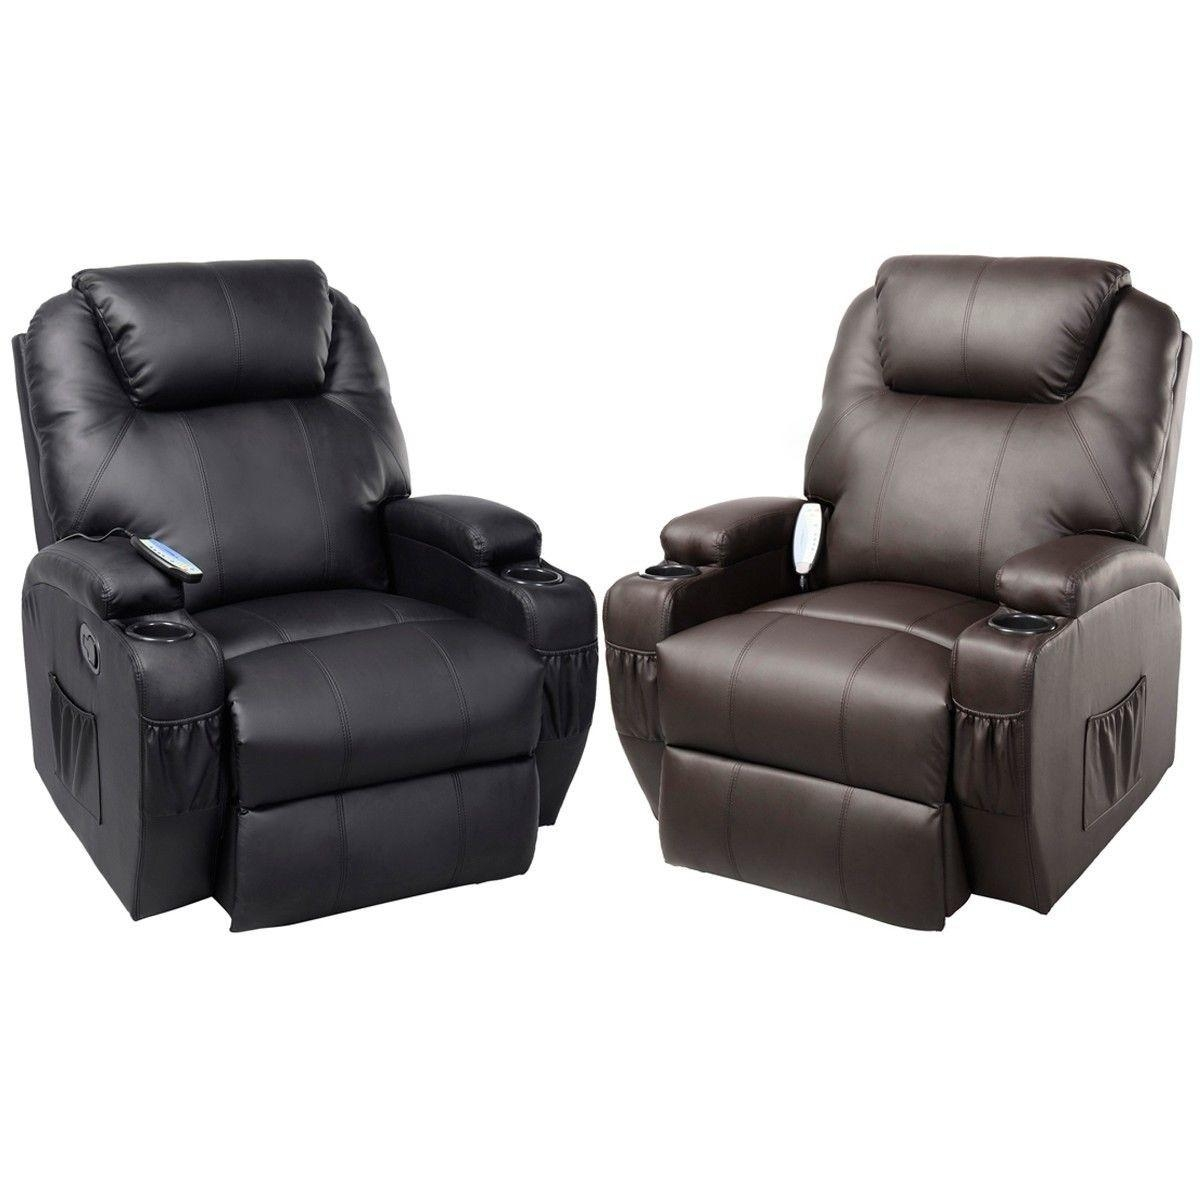 reclining massage sofa sofas for sale near me 20 43 choices of recliner chairs ideas